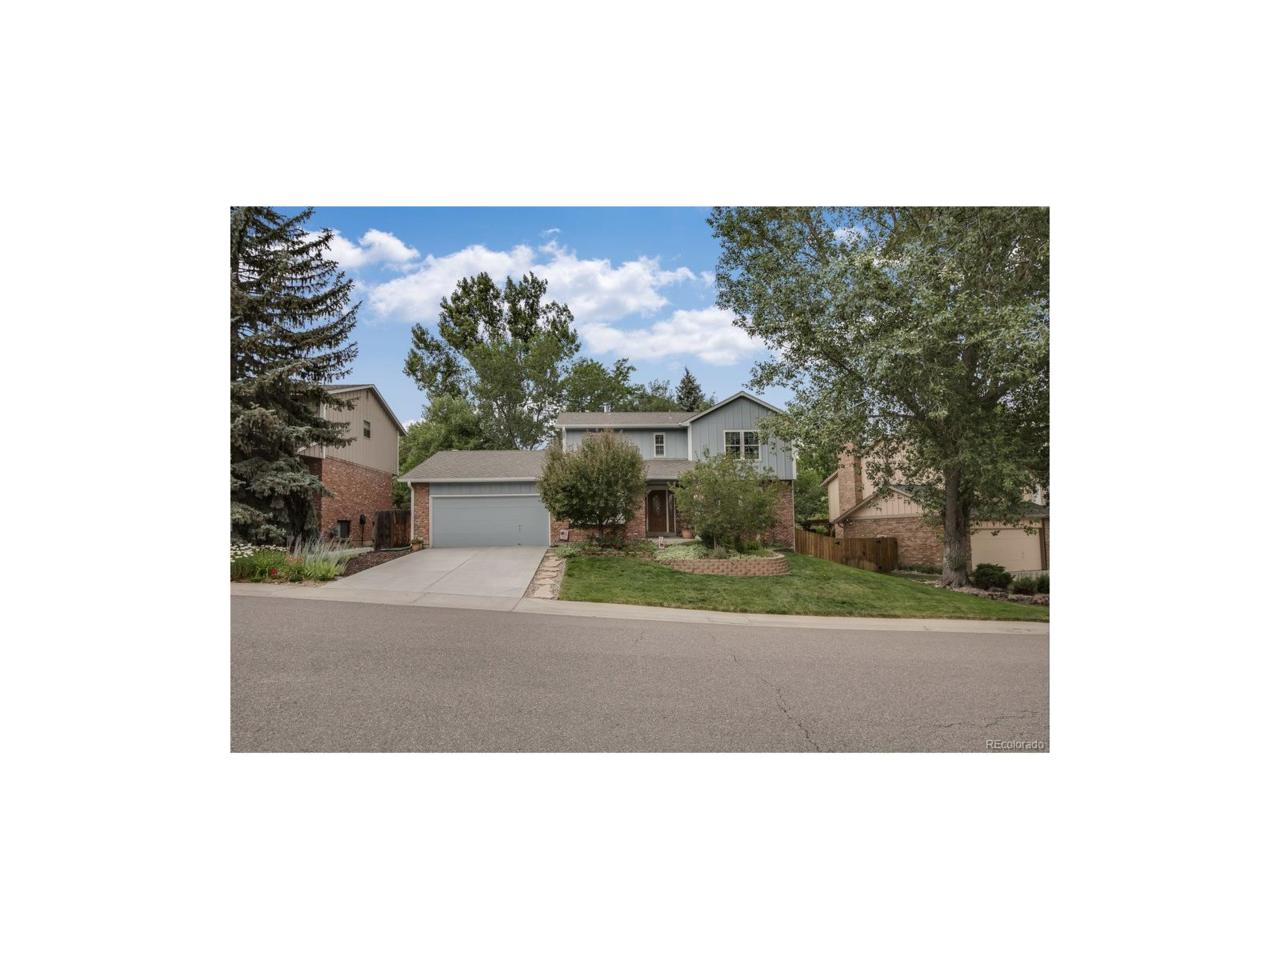 7935 S Monaco Court, Centennial, CO 80112 (MLS #7284382) :: 8z Real Estate